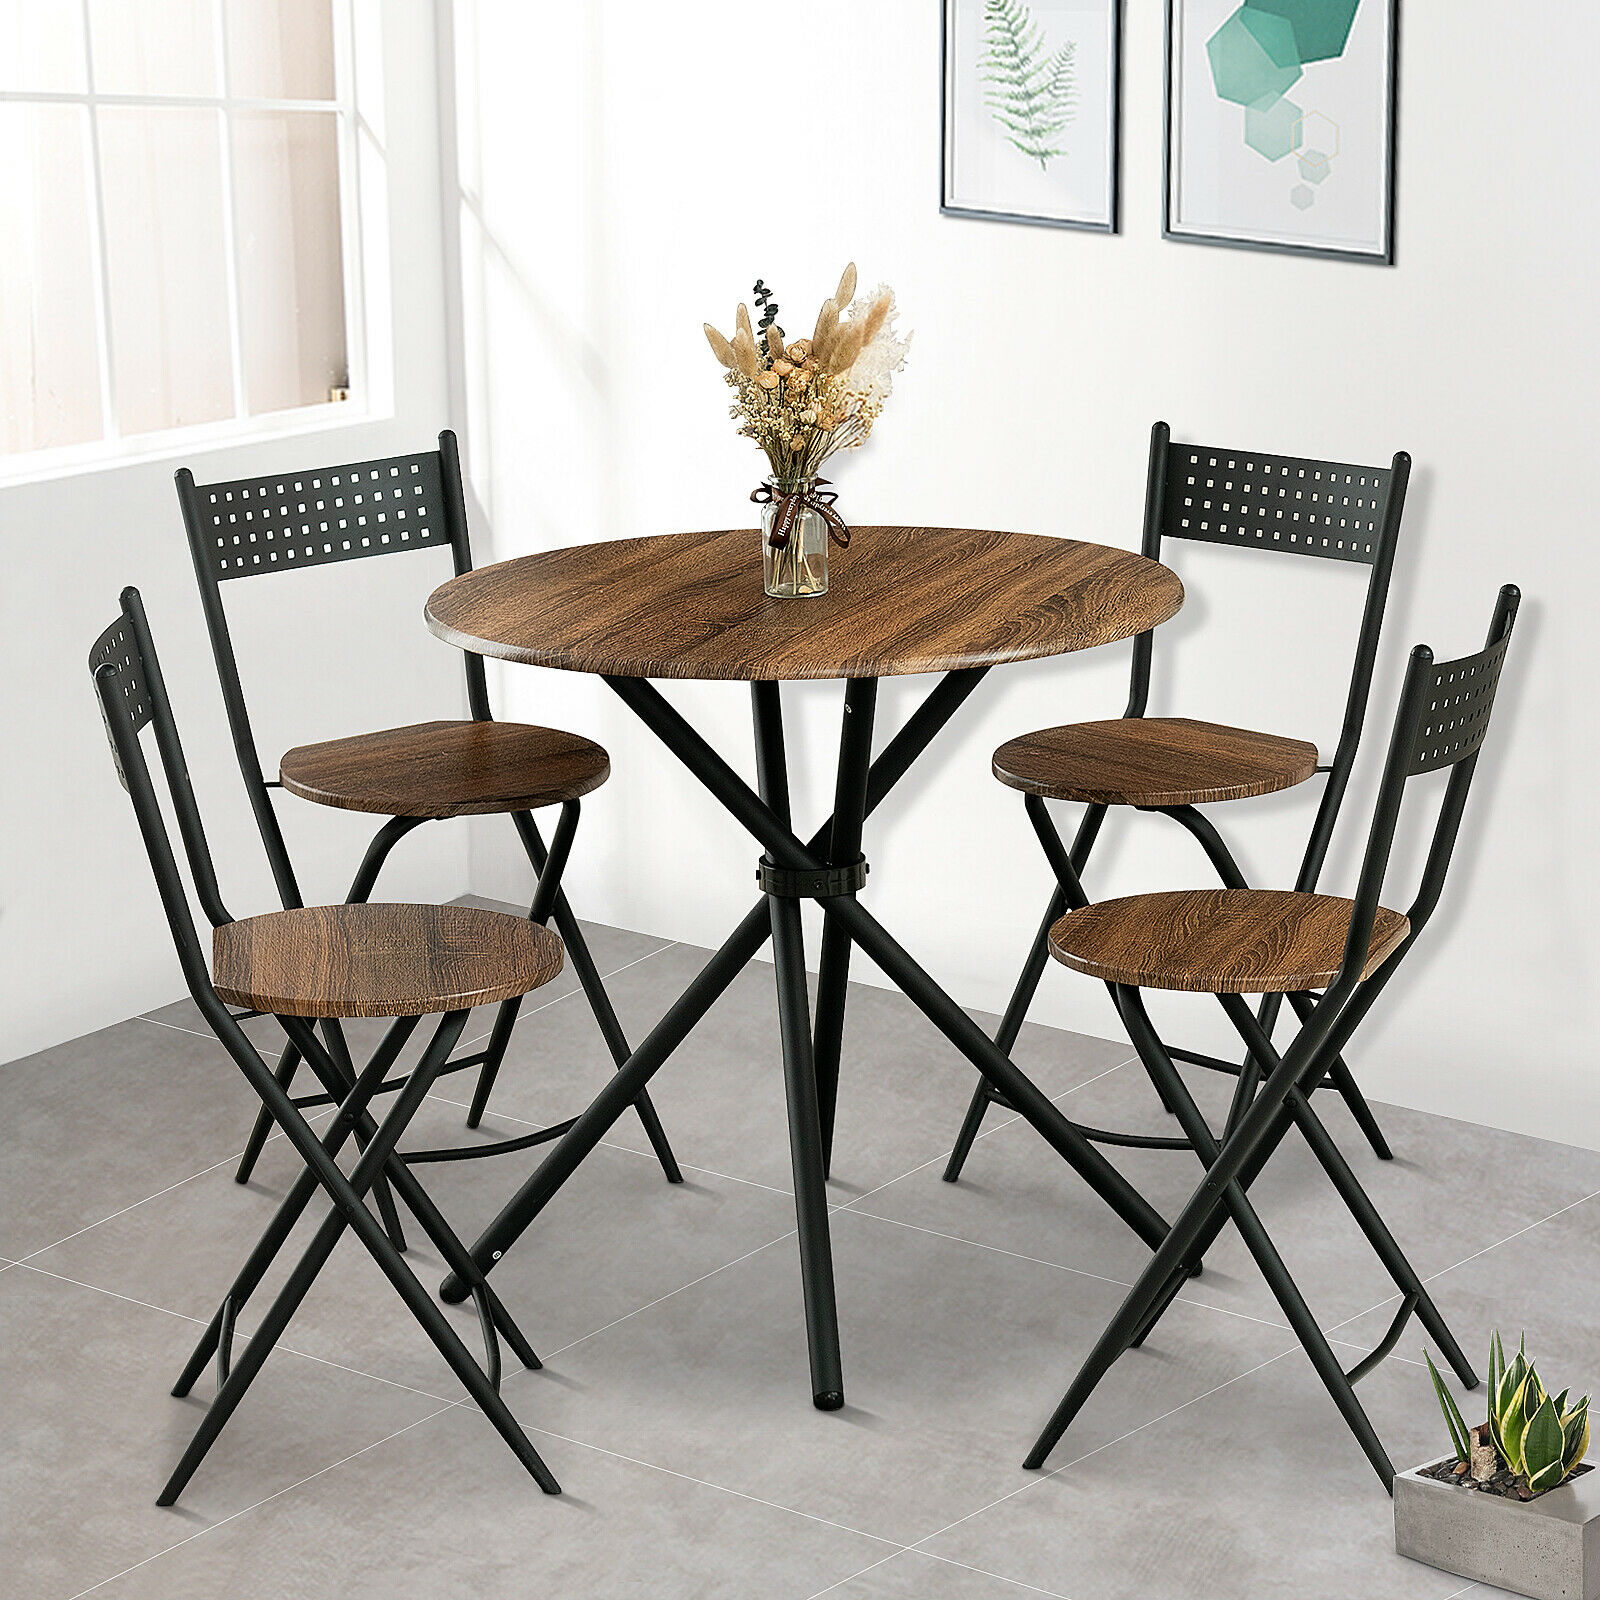 Modern 5pcs Metal Dining Table Set W 4 Folding Chairs Wood Top Kitchen Room For Sale Online